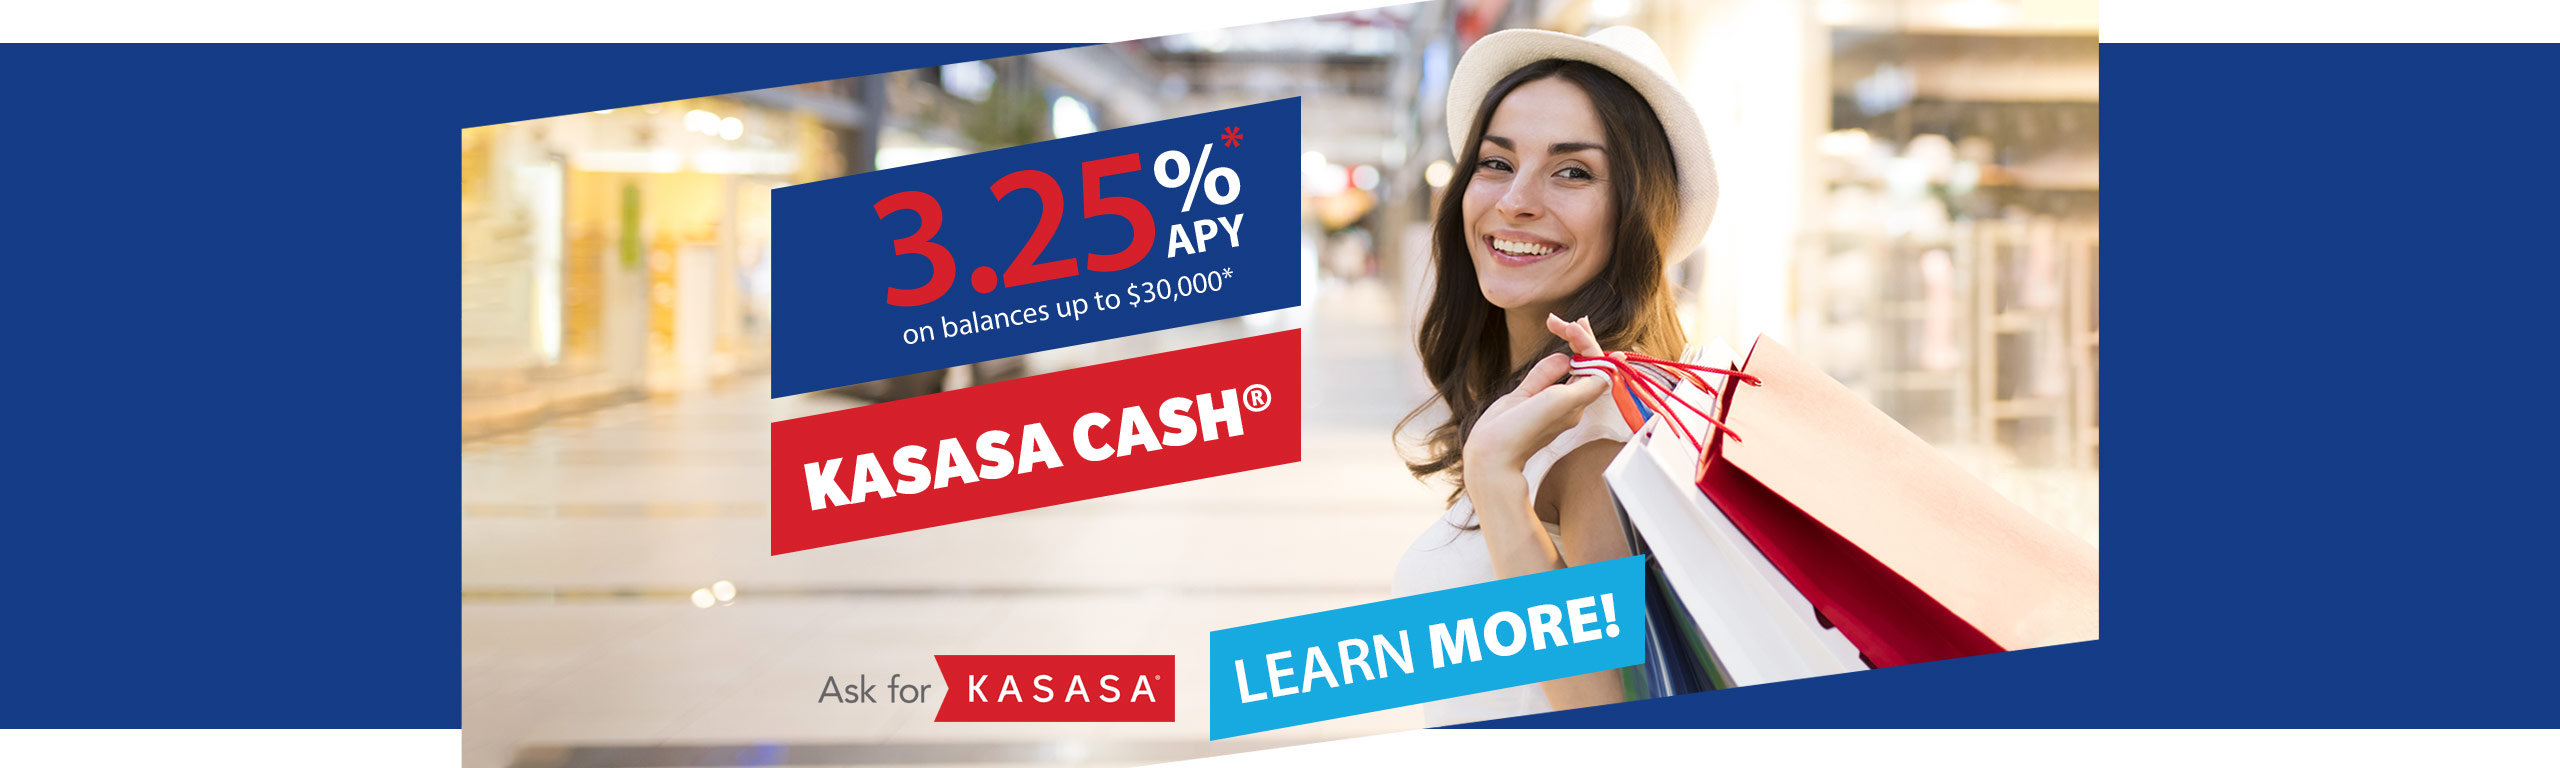 Kasasa Cash - Earn 3.25% APY* on balances up to $30,000. Learn more!